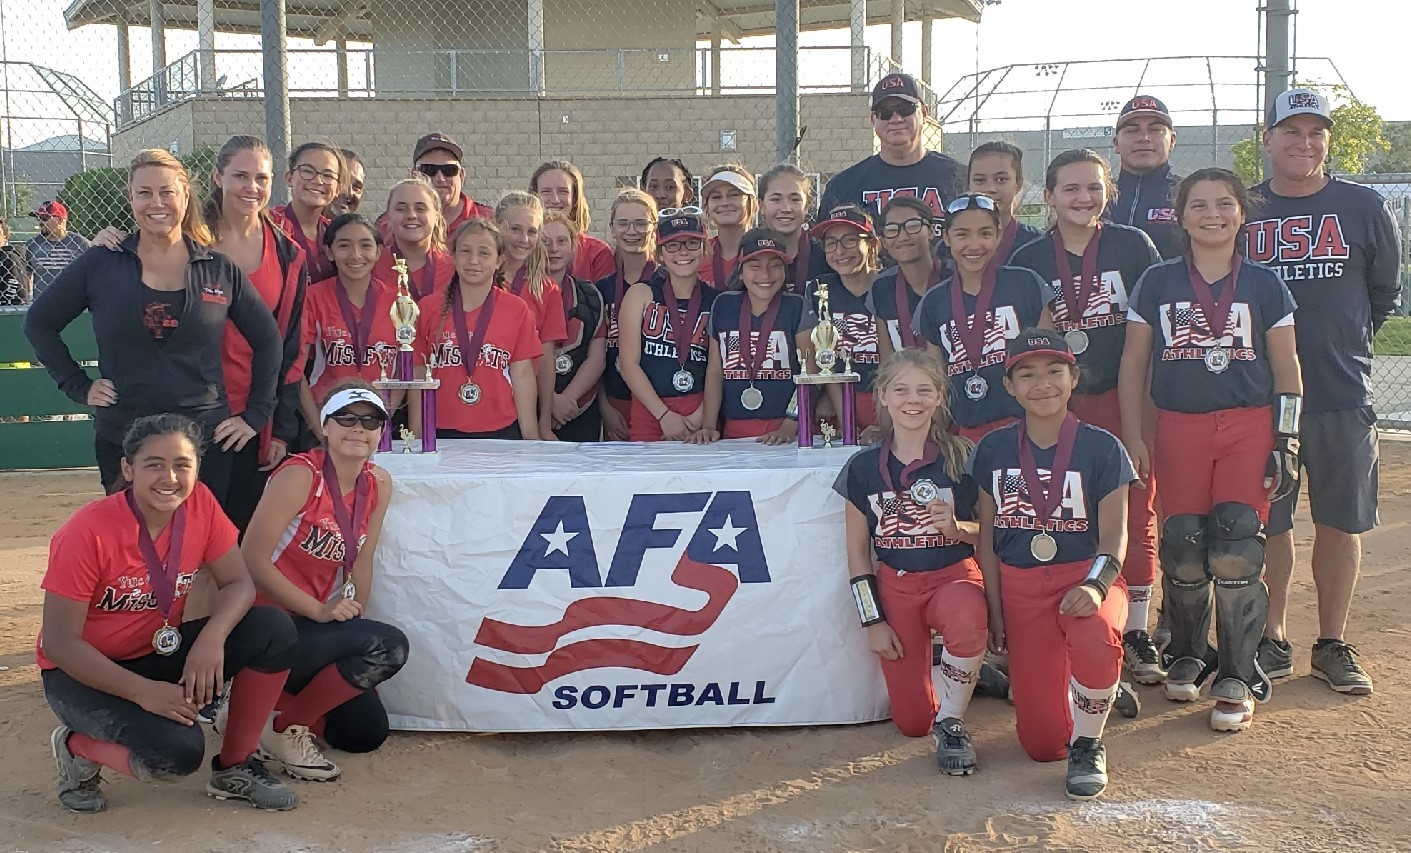 12u - Missfits and USA Athletics - Kmett